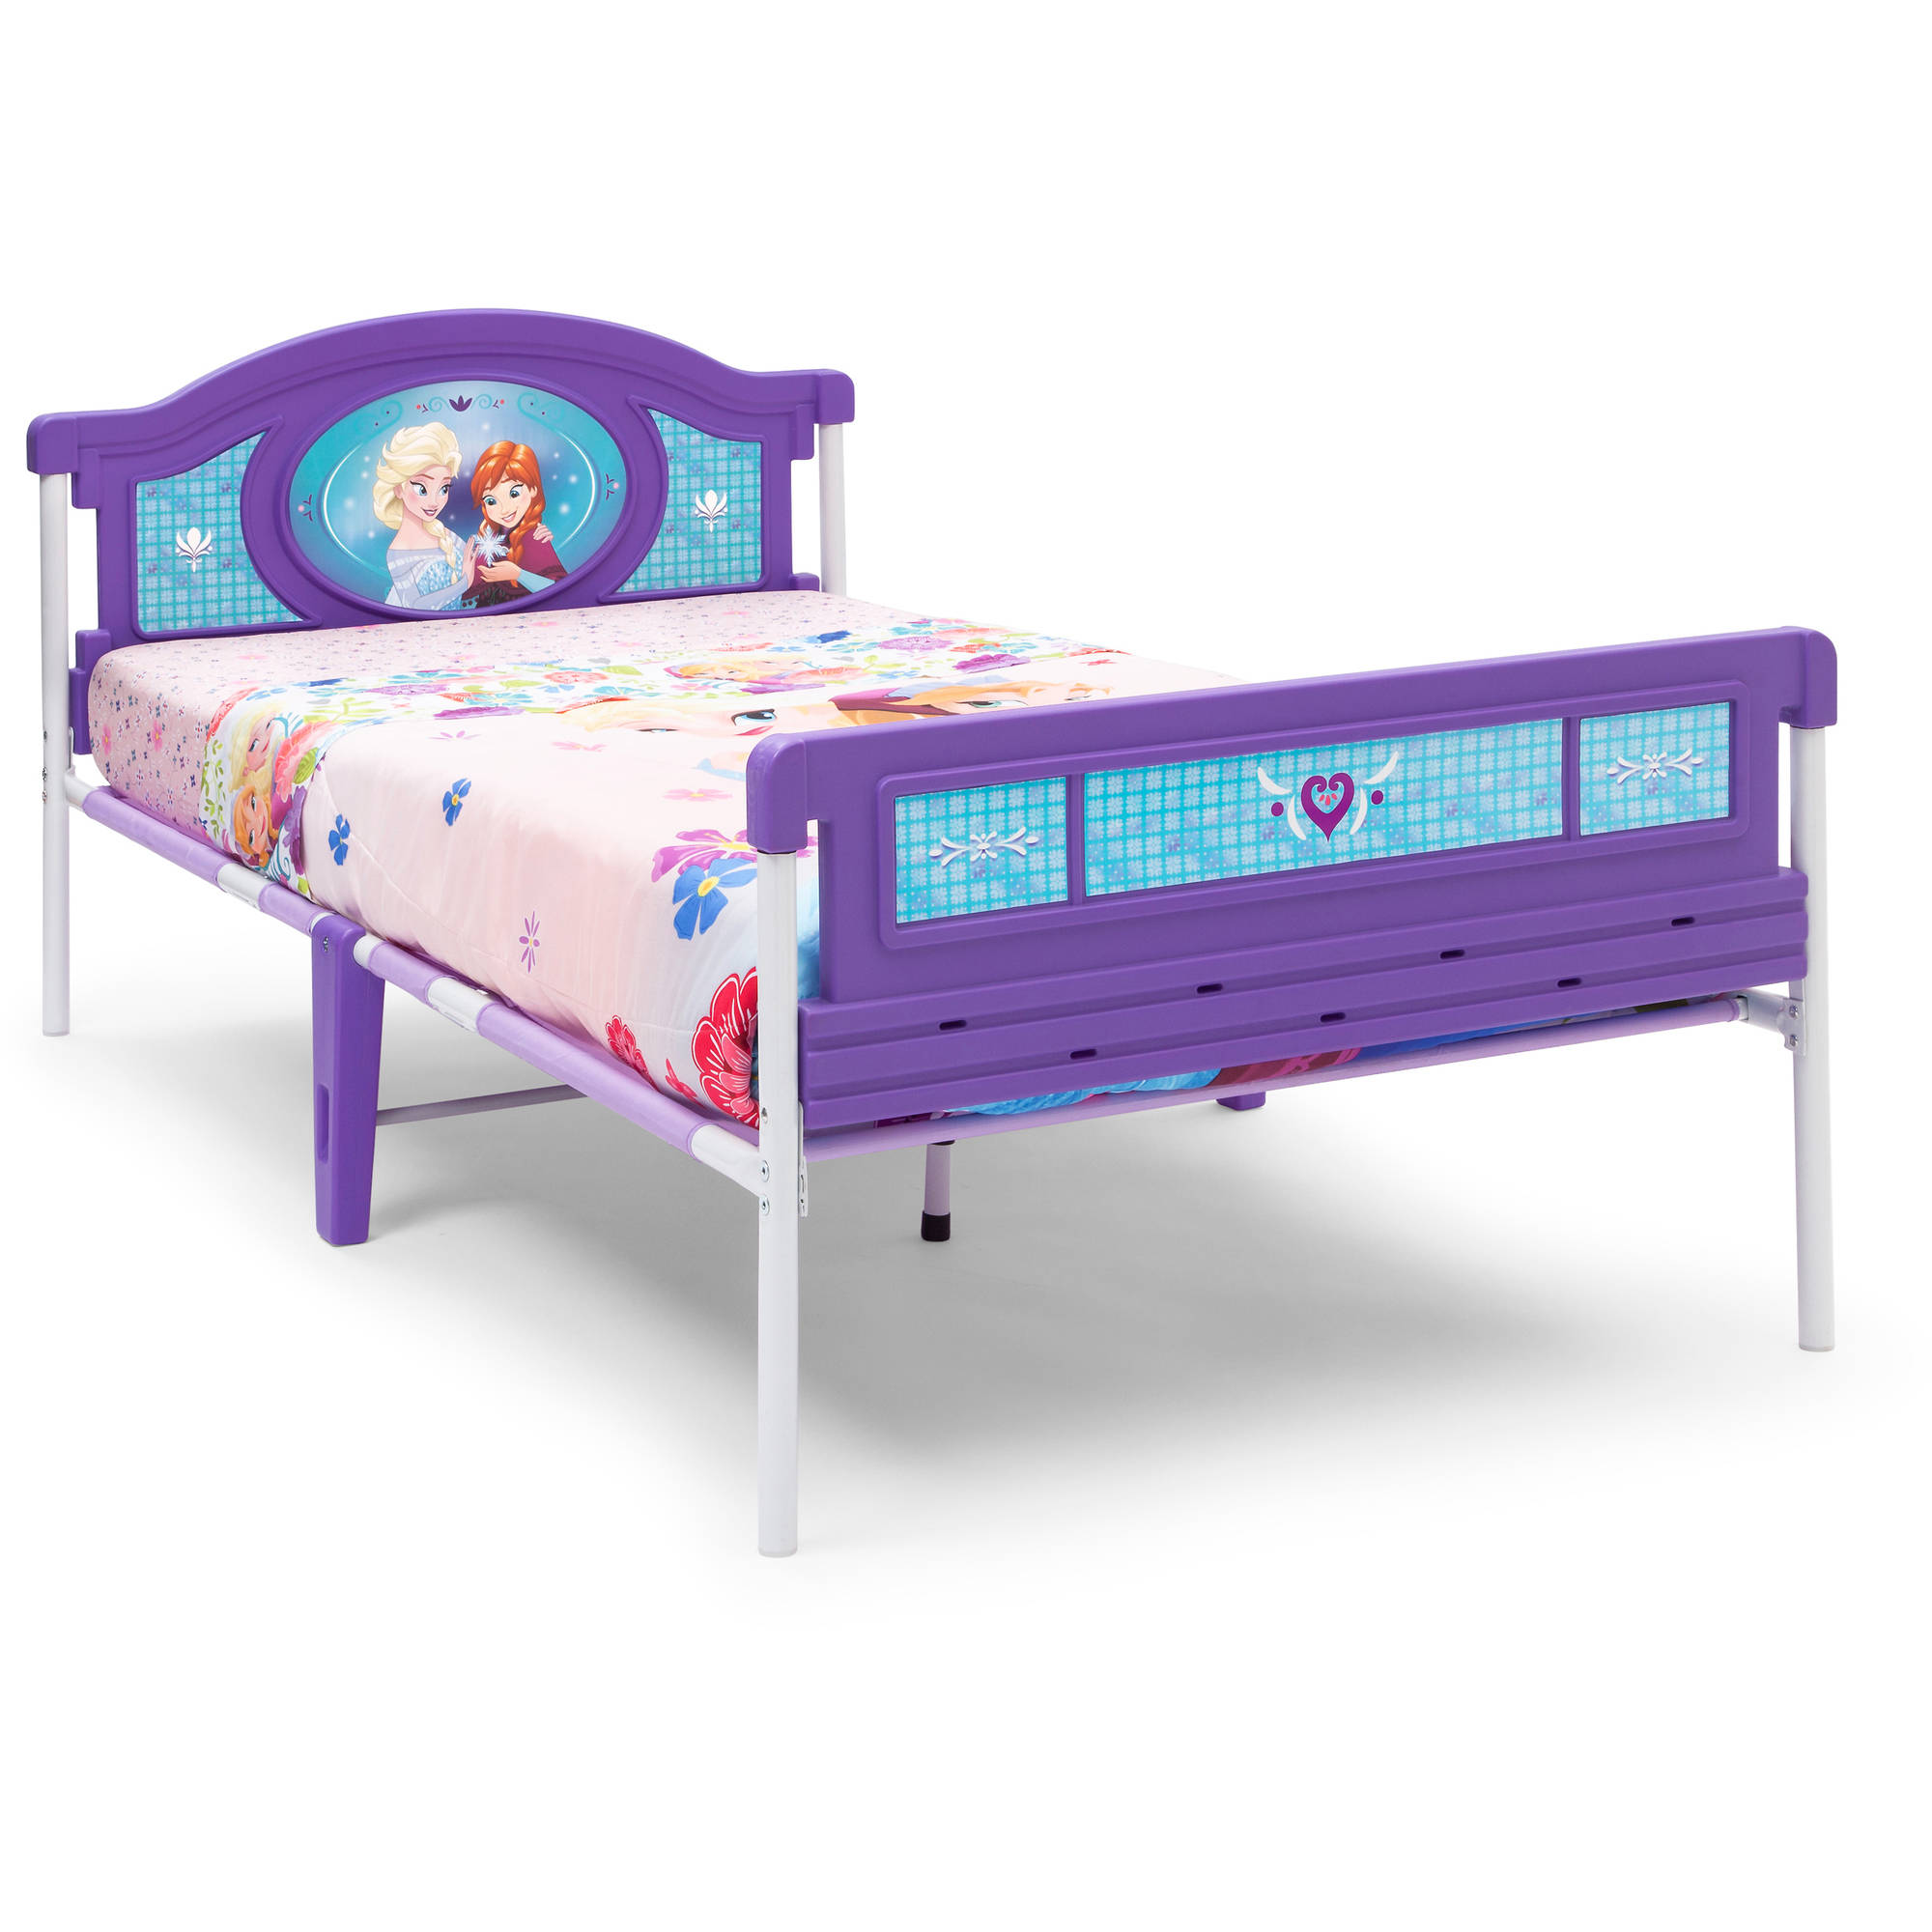 Delta Children Disney Frozen Plastic Bed, Twin, Purple